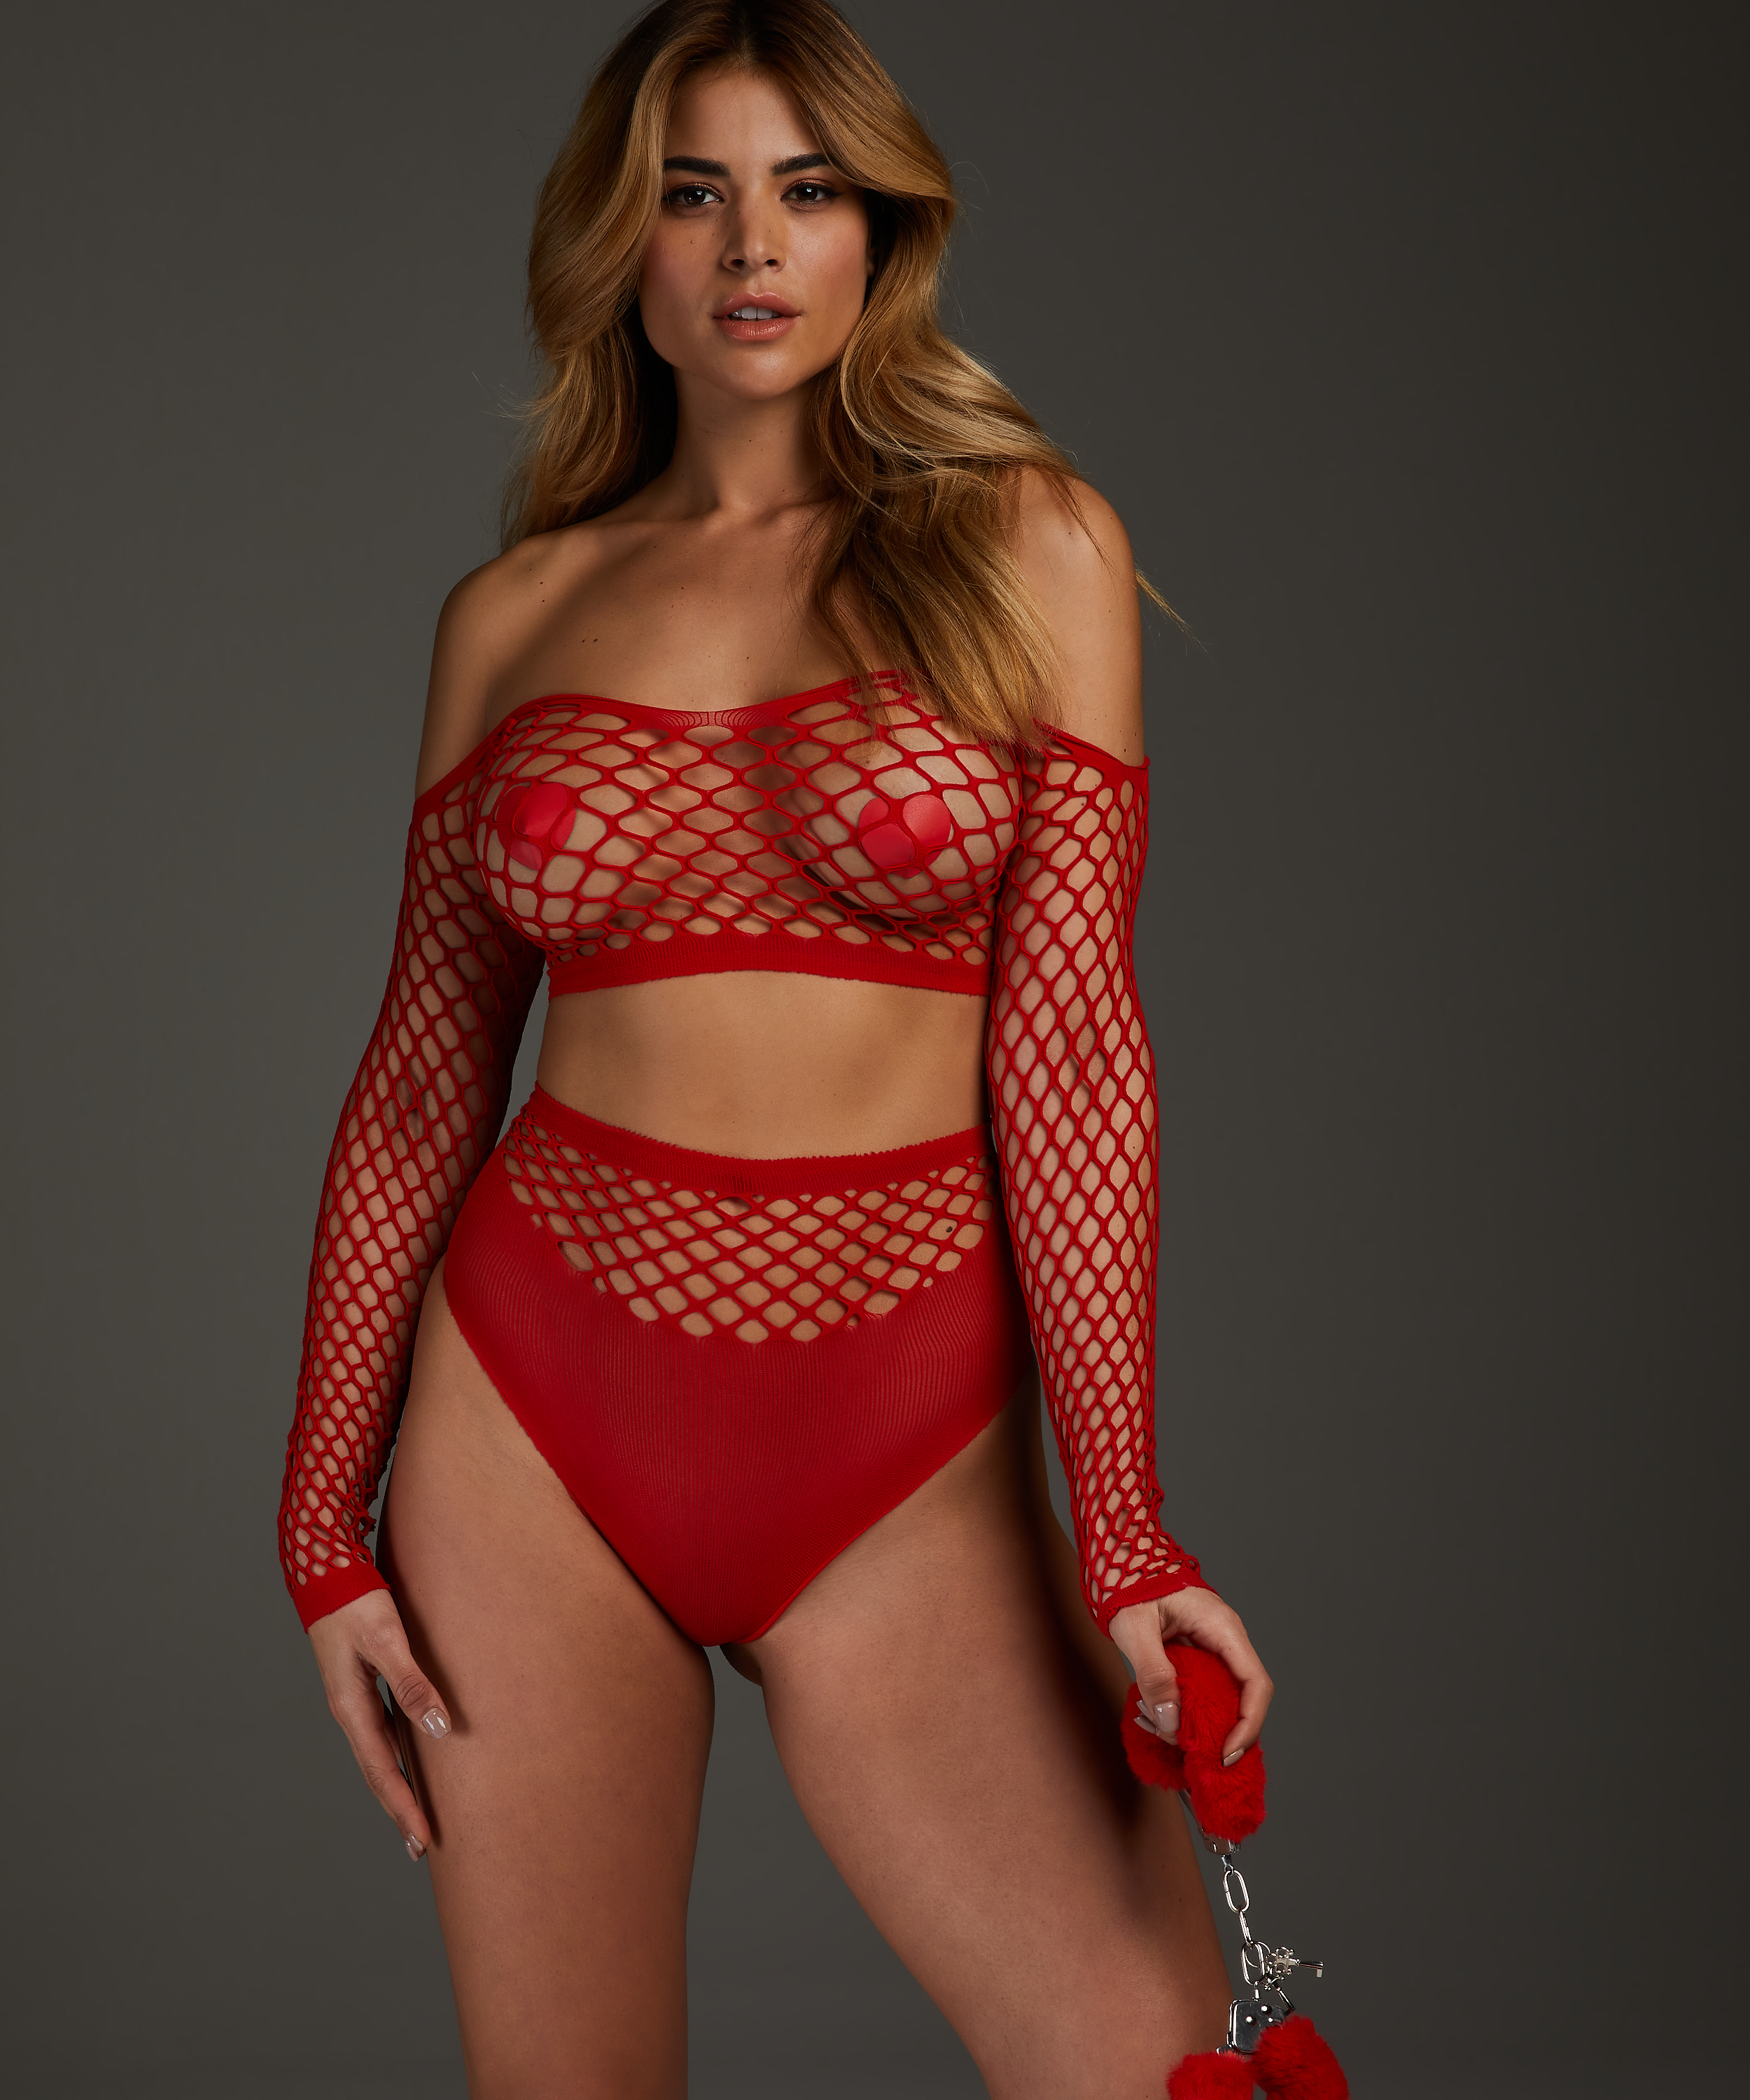 Private Fishnet Set, Red, main